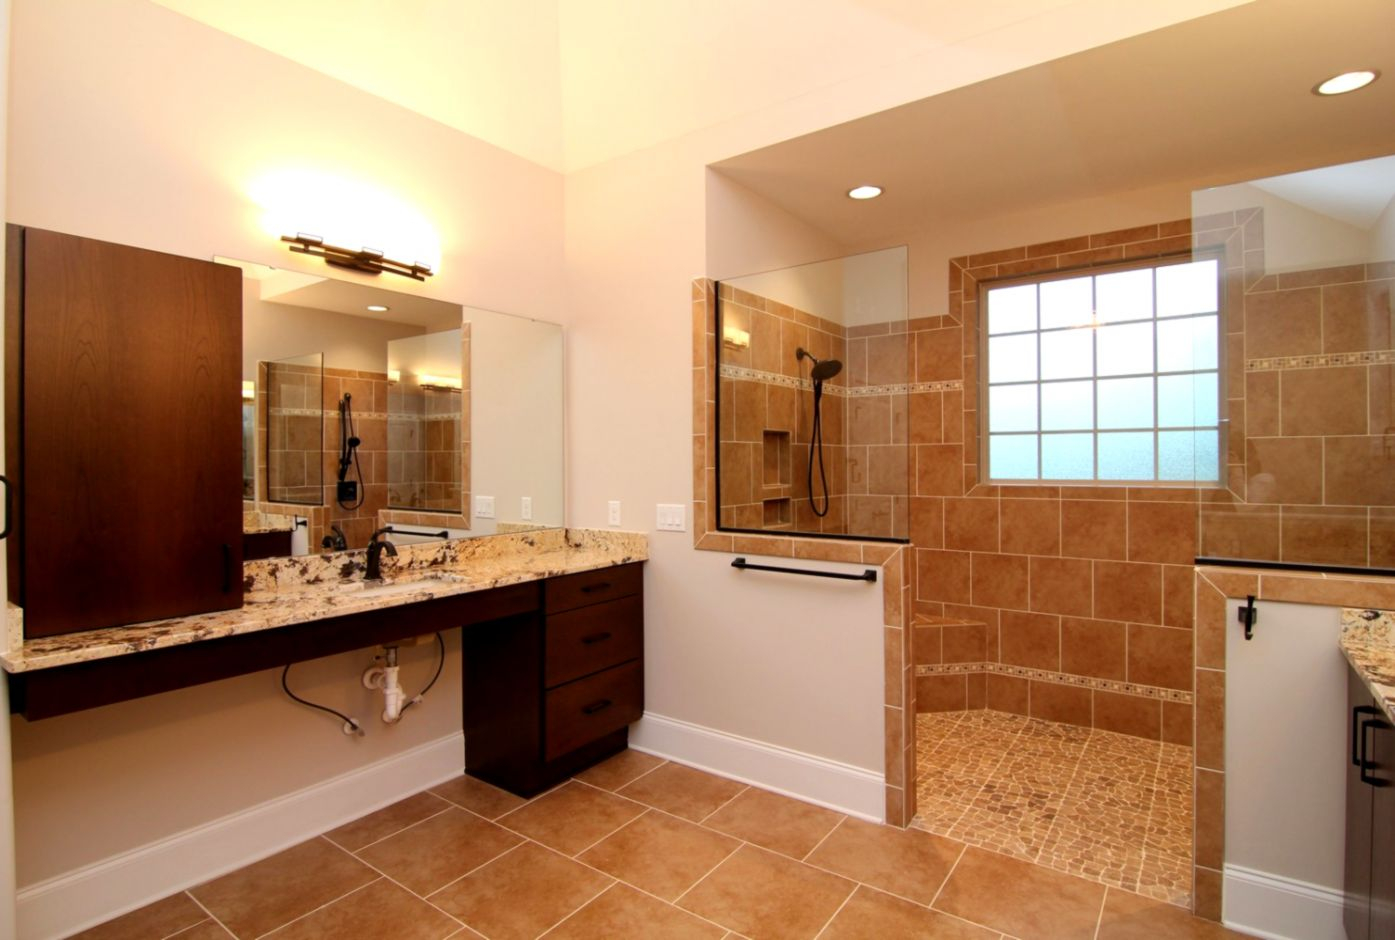 Handicapped Accessible Home Designs   Wallpapers Power on cobb home design, garrison home design, tranquility home design,